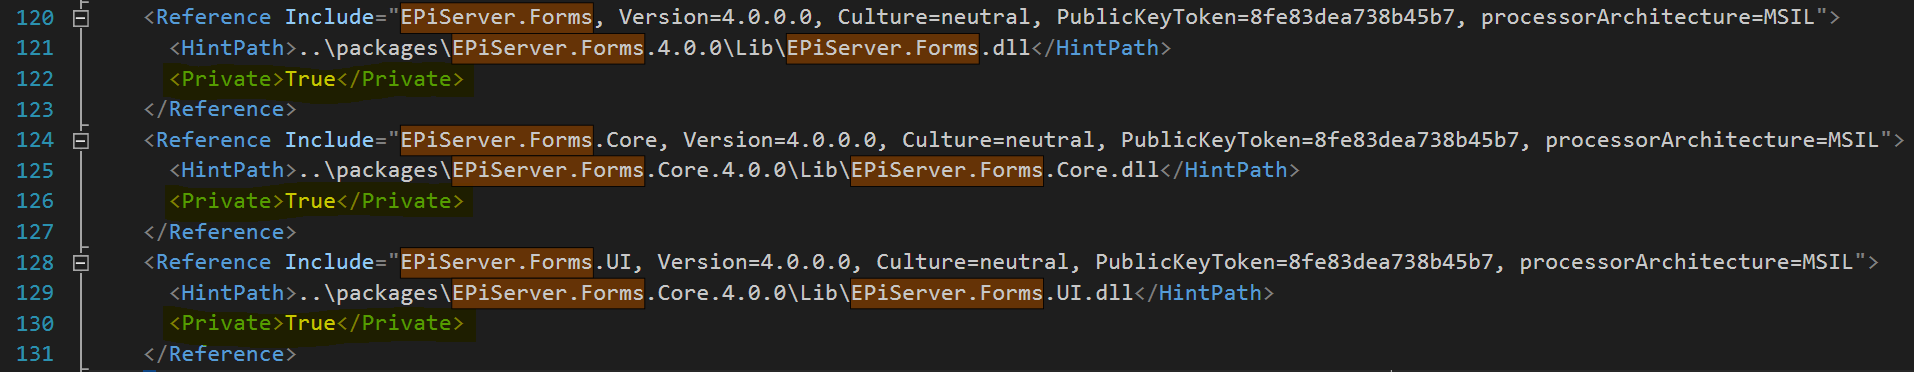 Csproj file with private tag value true on references with the Copy Local property set in Visual Studio.